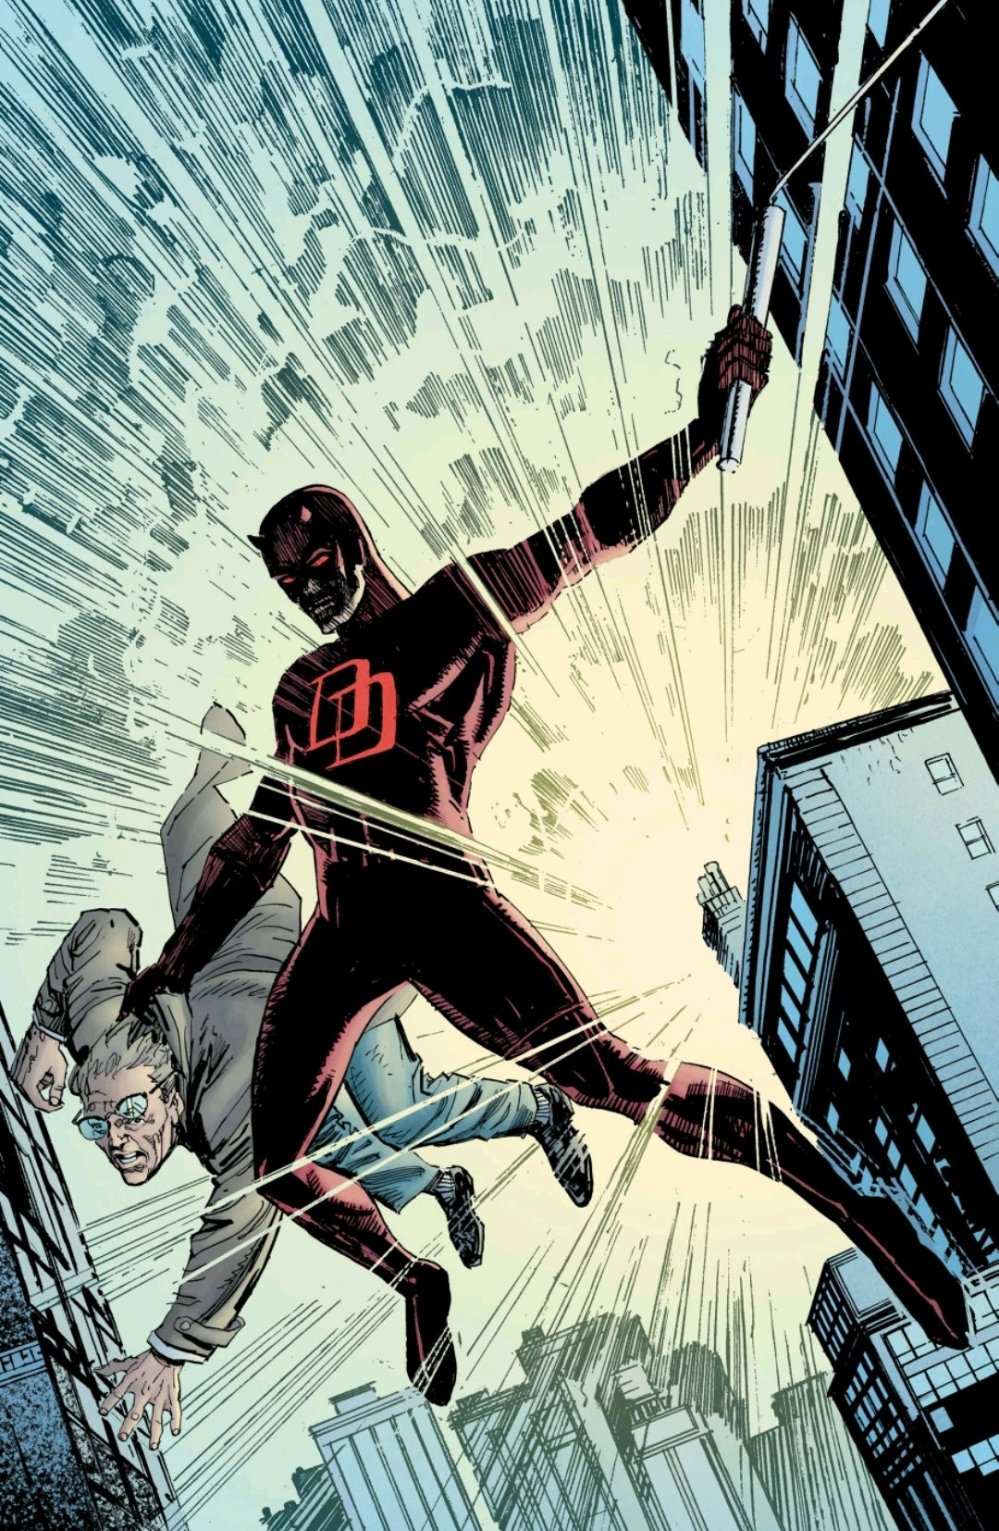 Daredevil rescuing Ben Urich from falling